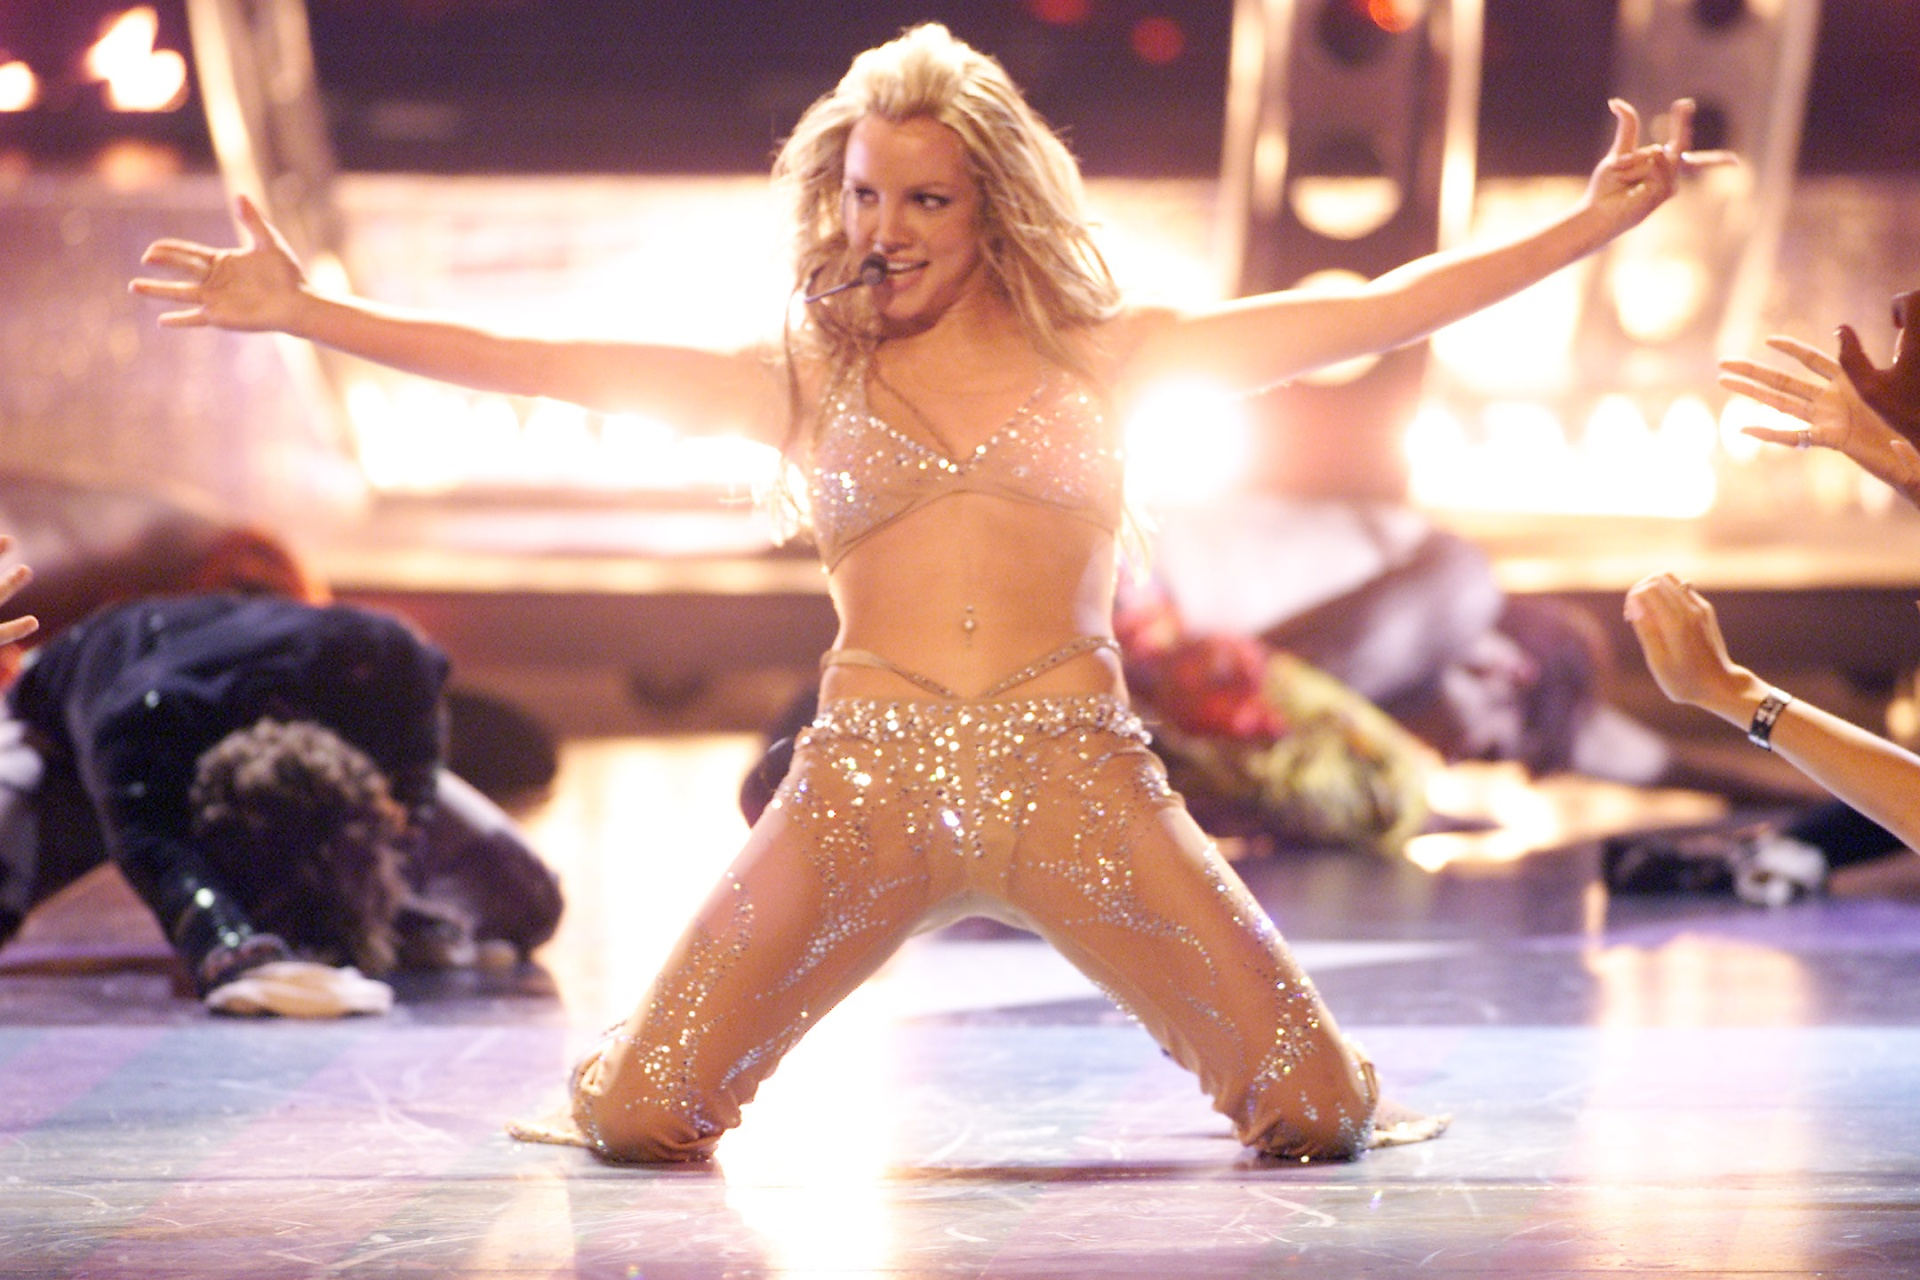 What Do We Need To #FreeBritney From?